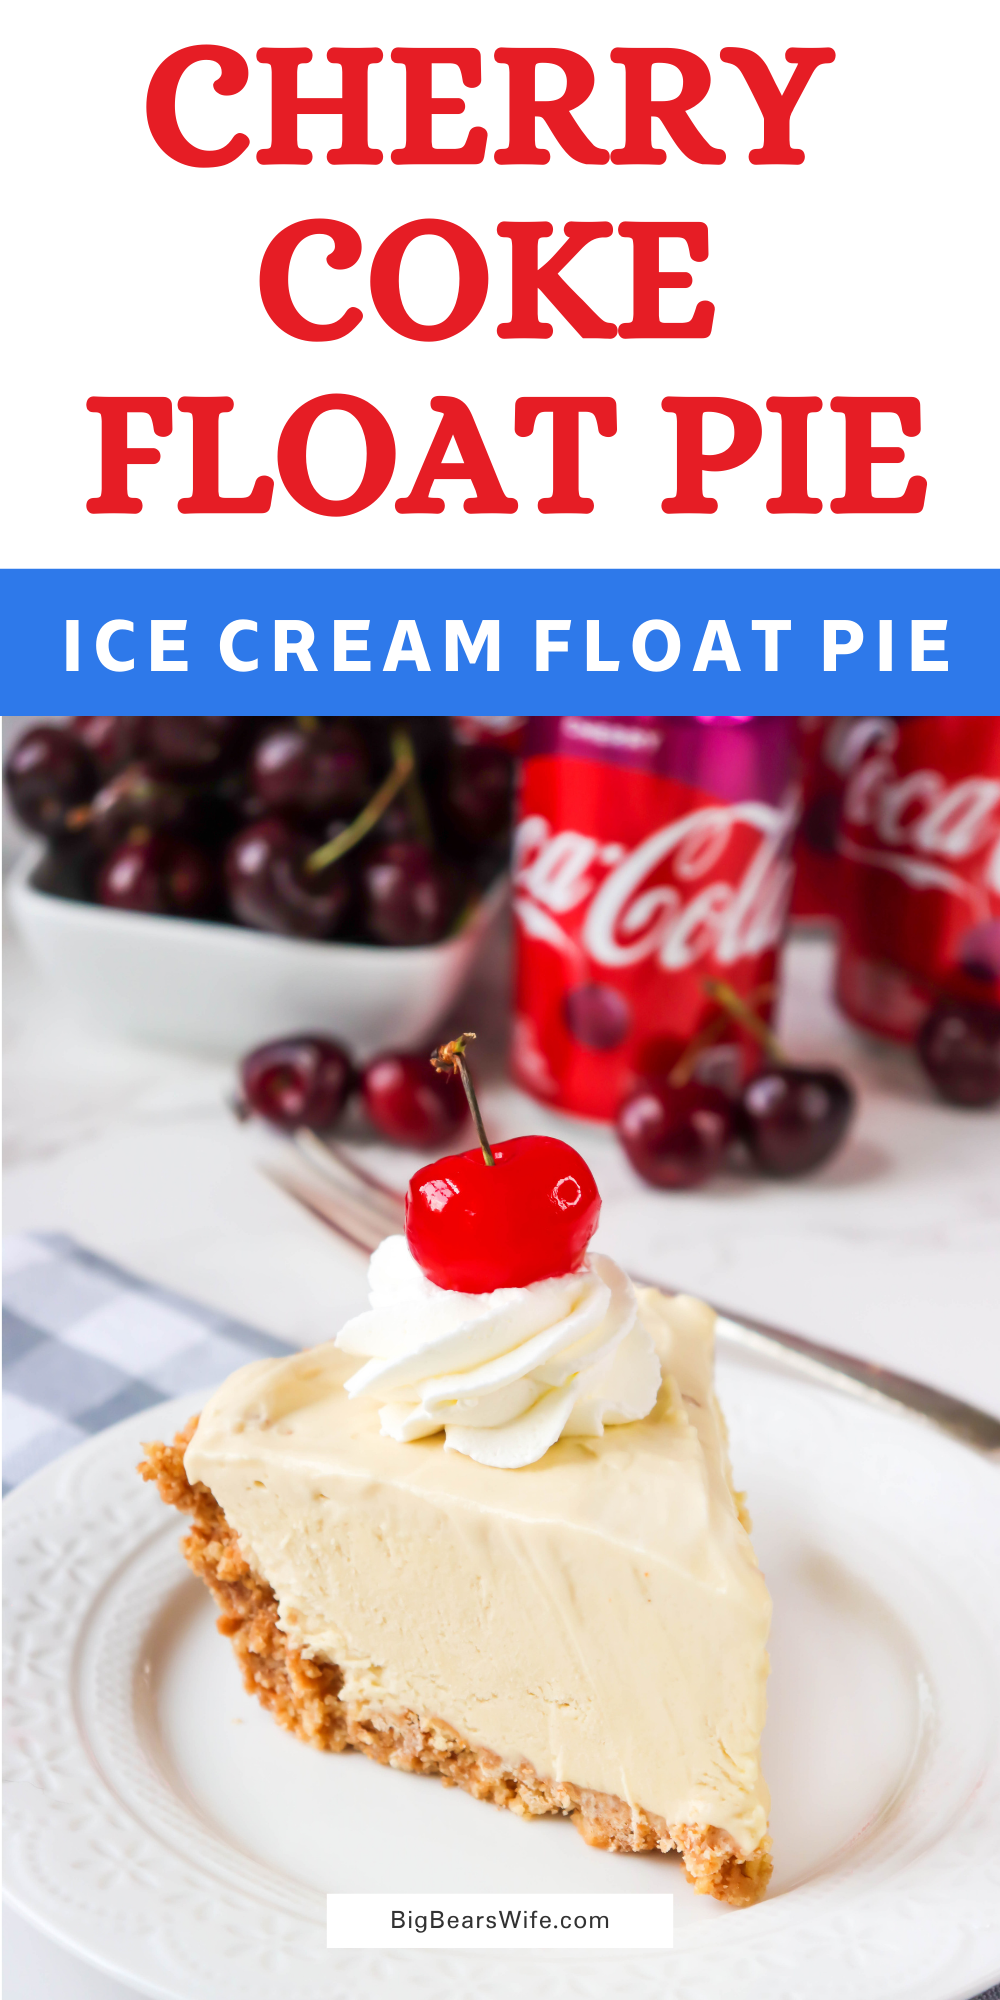 If you love ice cream floats then you're going to want to grab this recipe for homemade Cherry Coke Float Pie! This frozen desserts lets you slice up your favorite ice cream float for the perfect summer dessert! via @bigbearswife